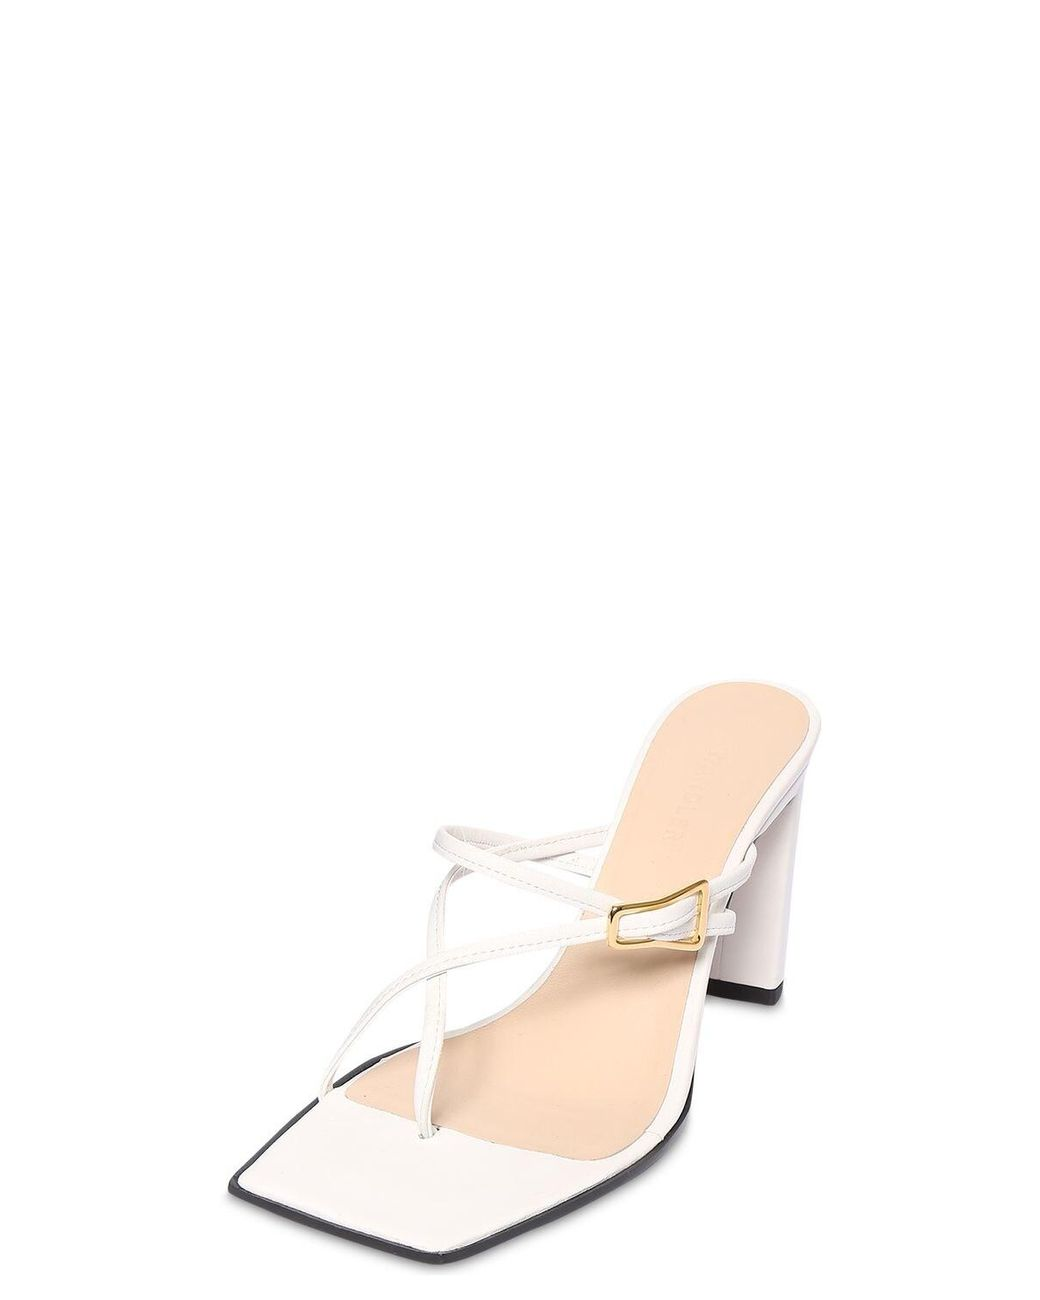 Wandler 85mm Yara Leather Sandals in White - Lyst